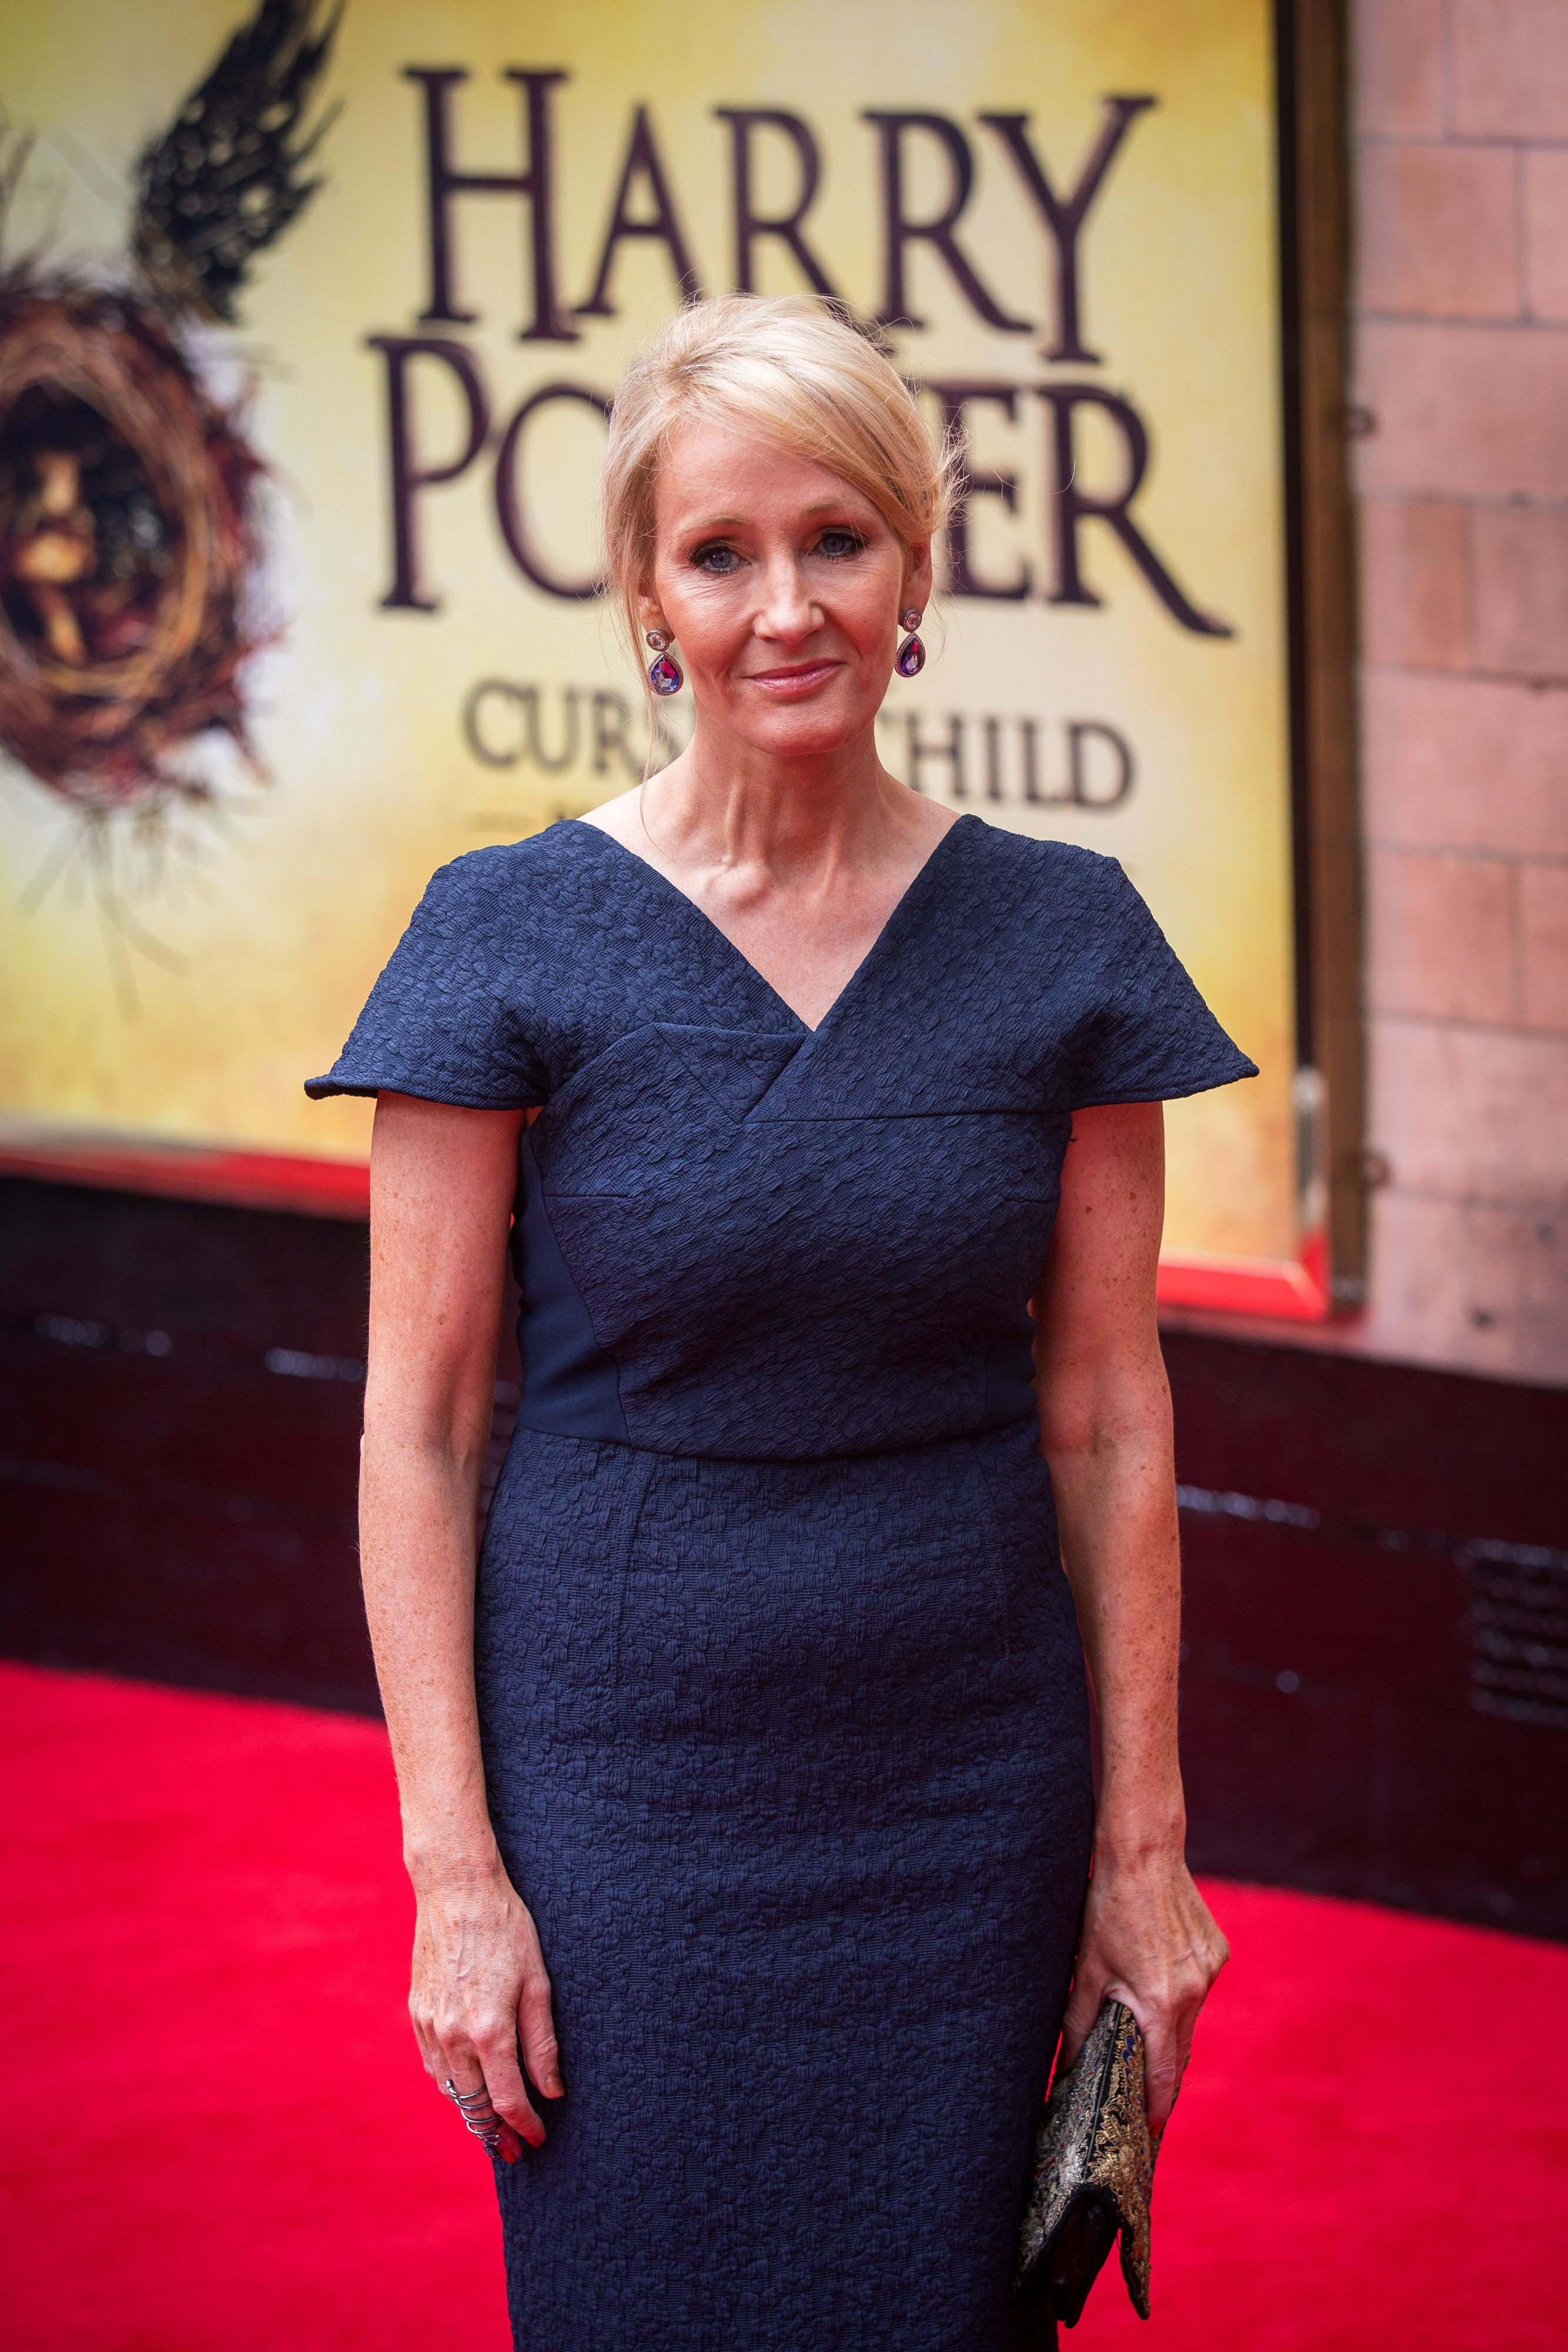 J. K. Rowling debuts 'Harry Potter & The Cursed Child' on July 30, 2016